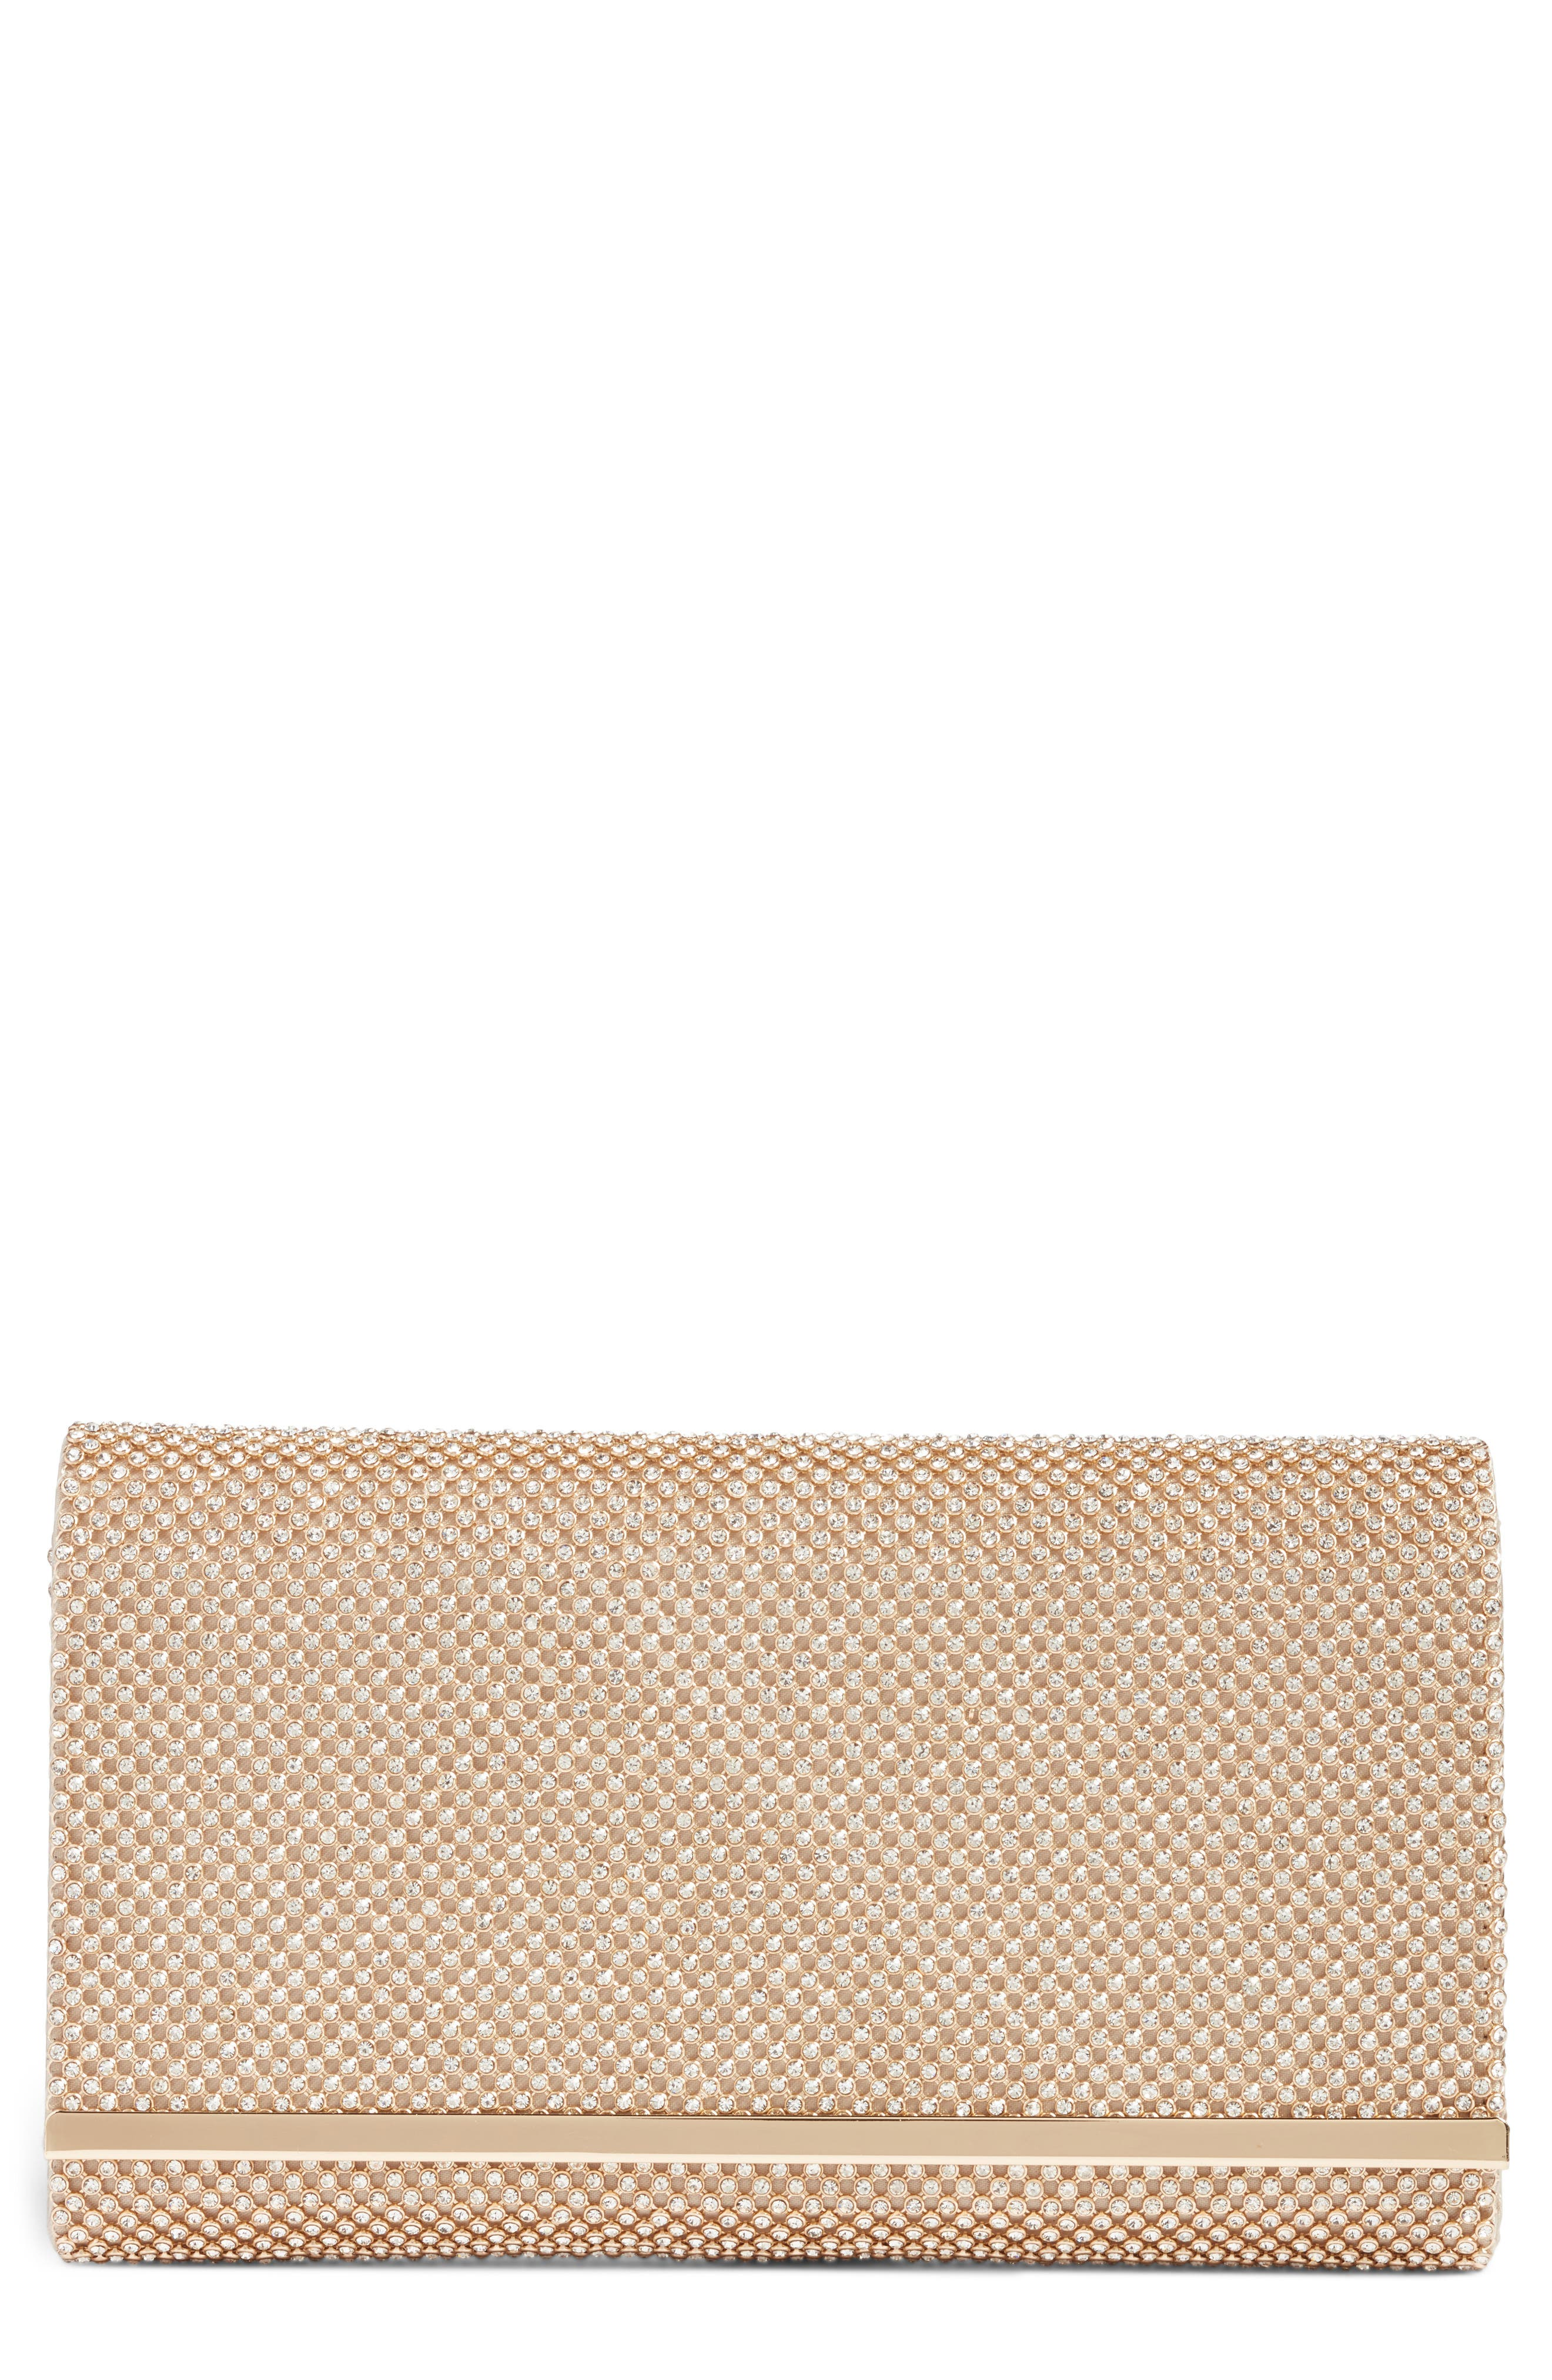 NORDSTROM,                             Crystal Mesh Bar Clutch,                             Main thumbnail 1, color,                             GOLD